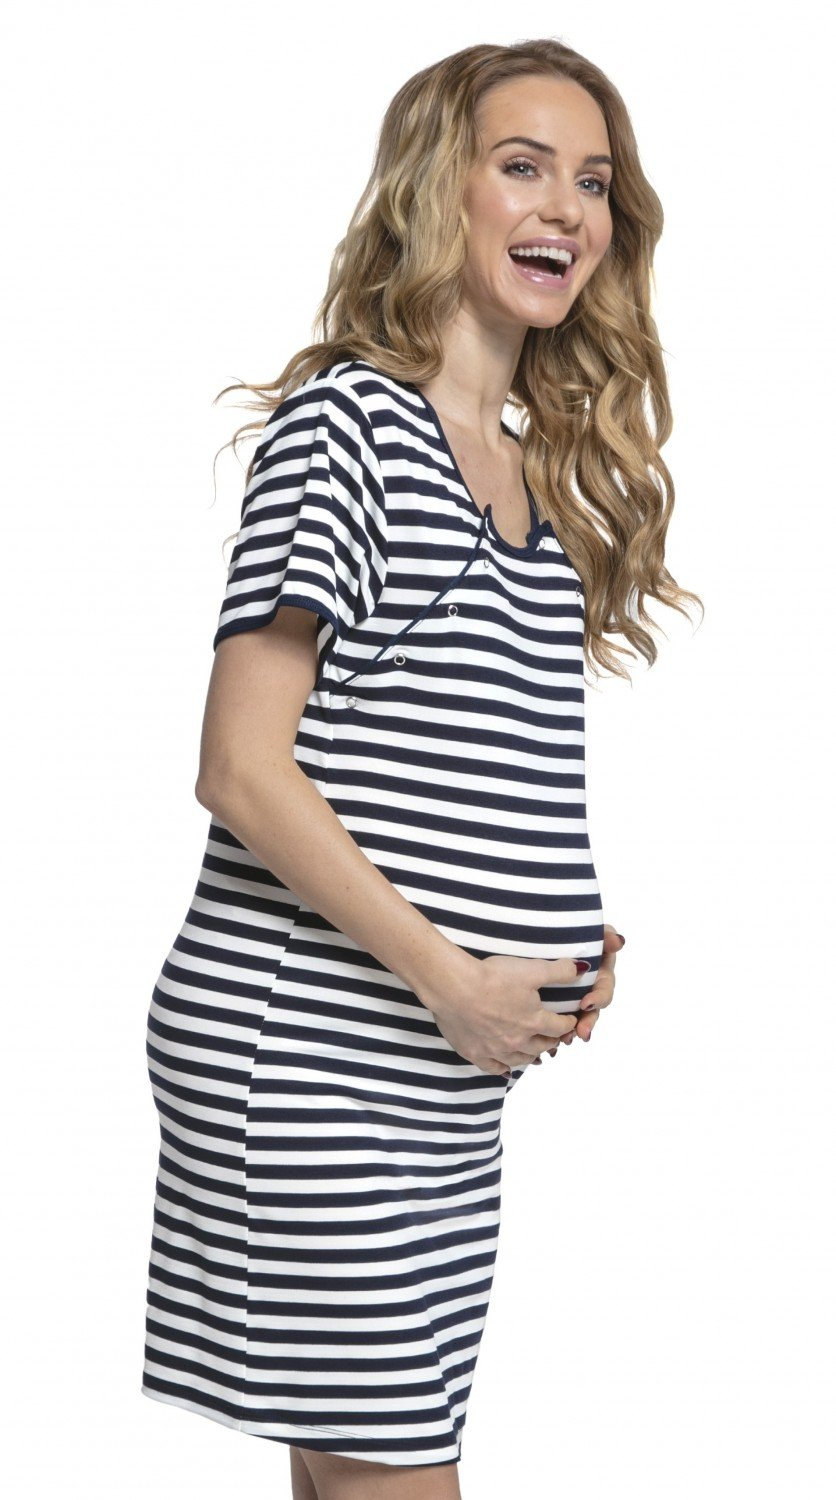 HAPPY MAMA Women's Maternity Hospital Gown Nightie Stripes Labour and Birth. 078p pregnight_078